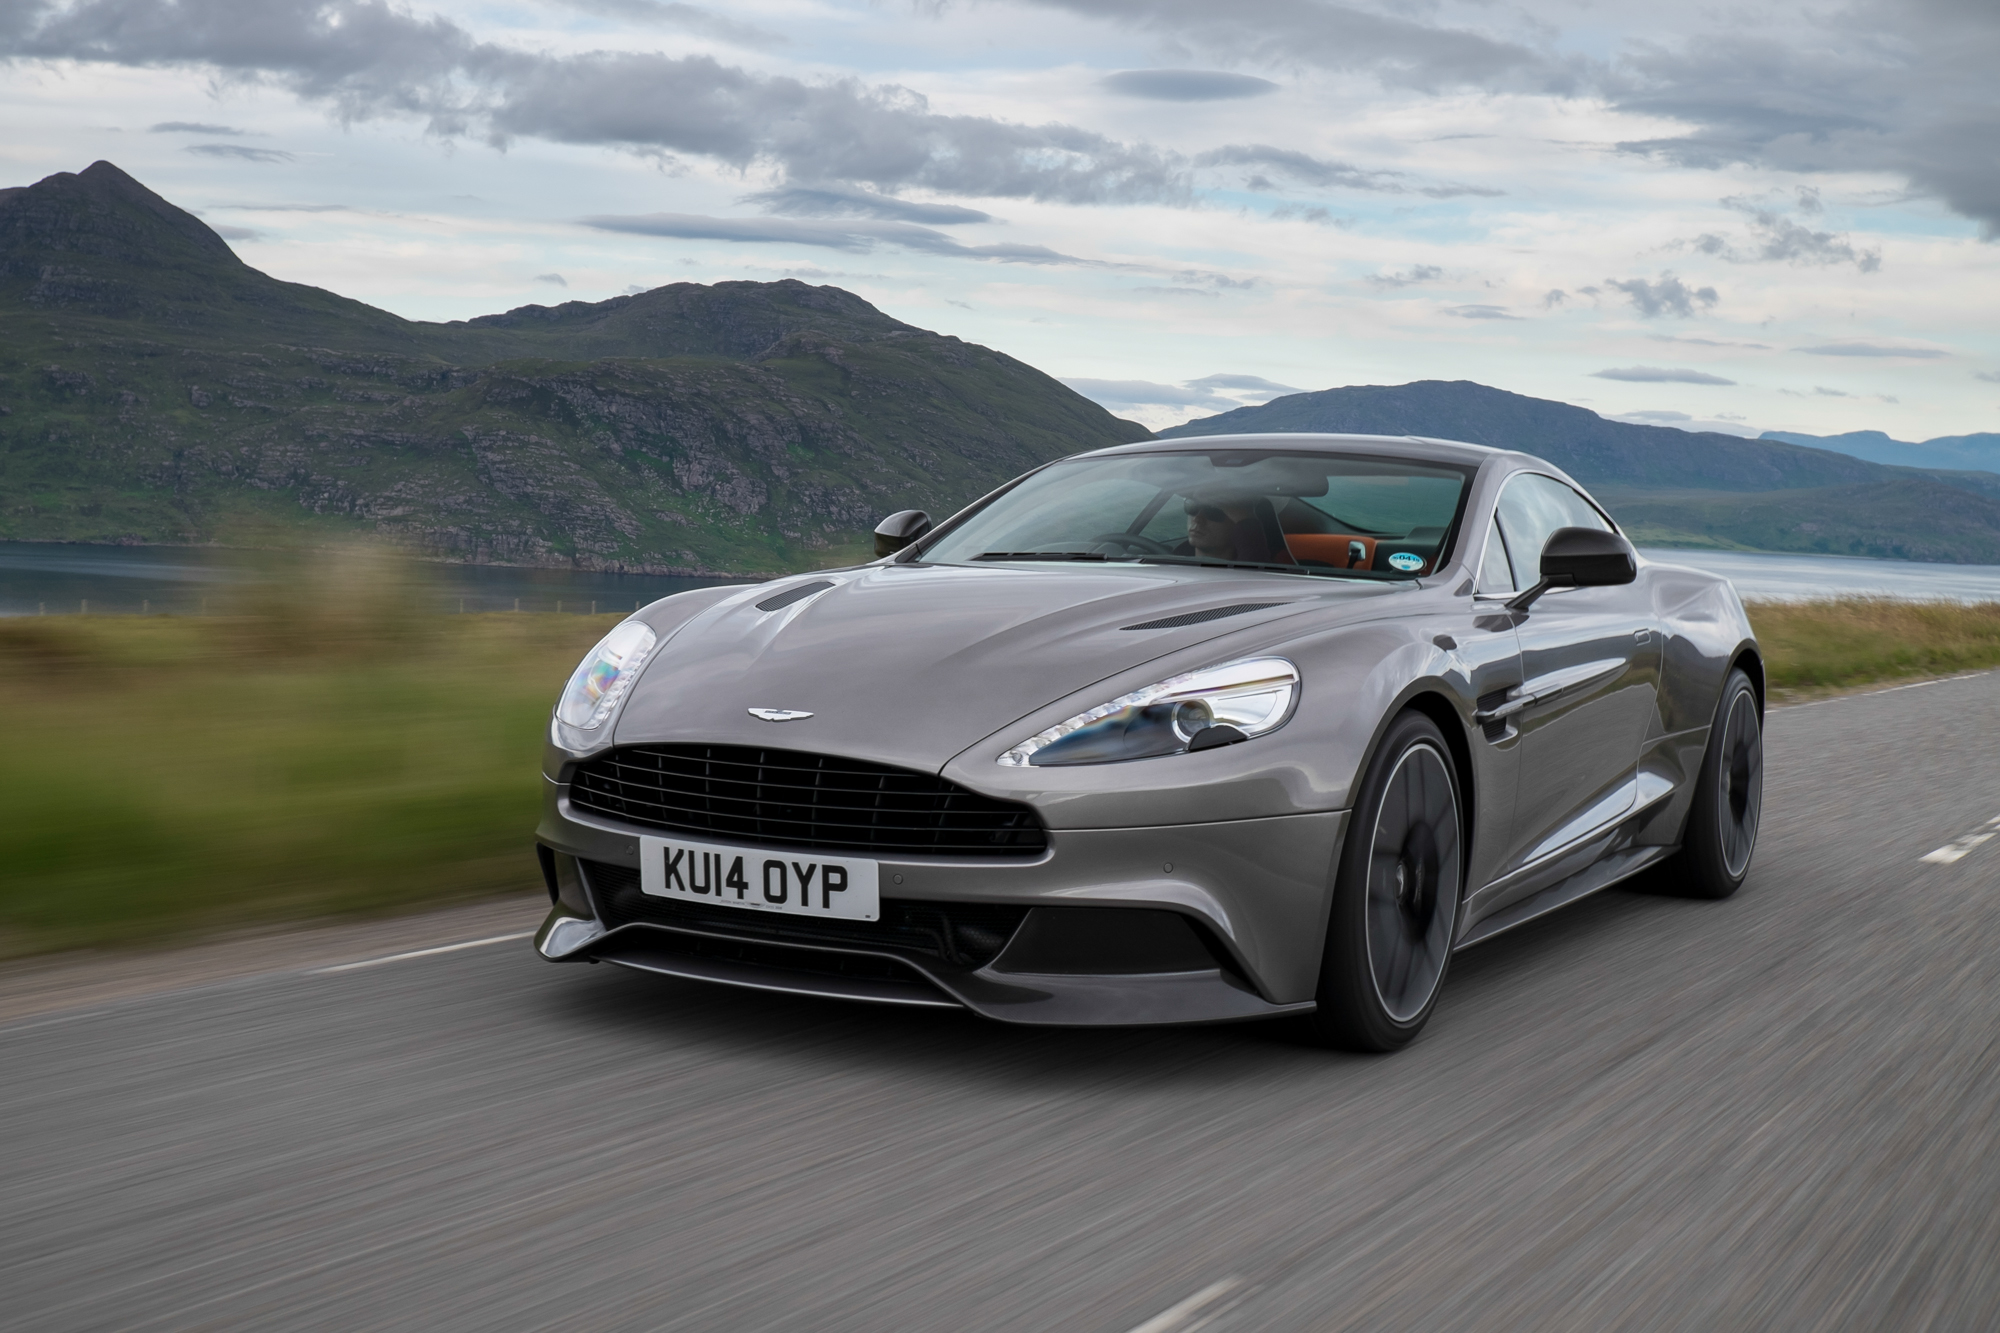 2015 aston martin vanquish review ratings specs prices and photos the car connection. Black Bedroom Furniture Sets. Home Design Ideas